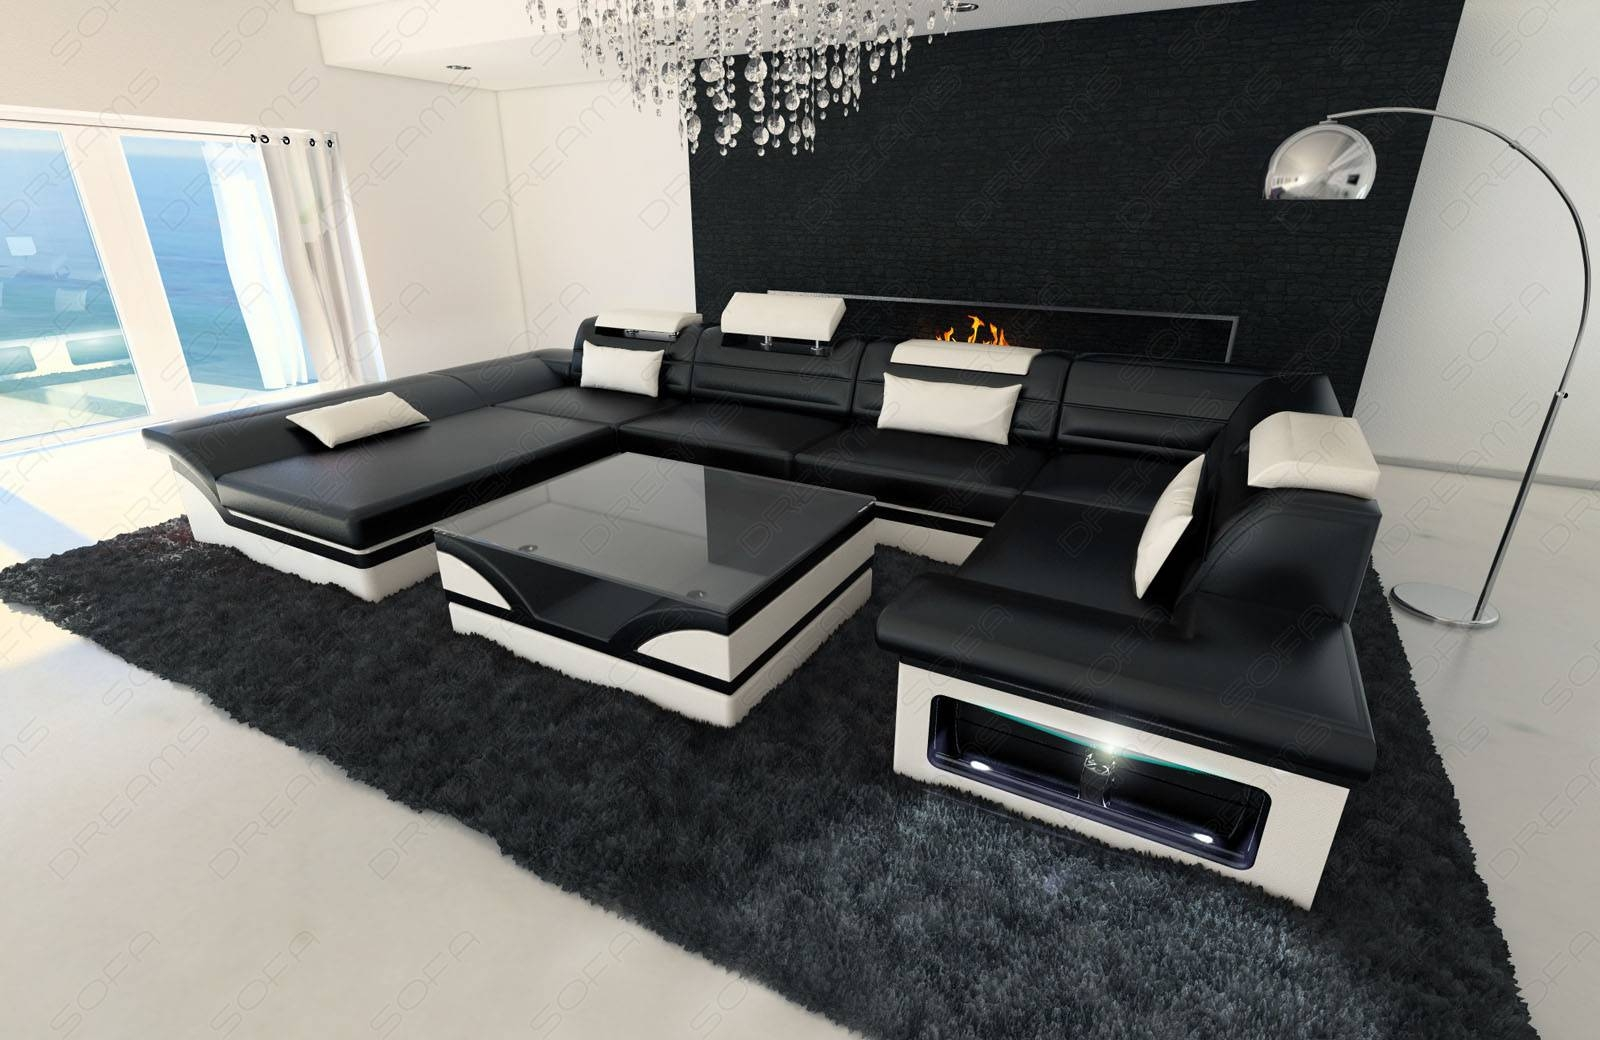 Big Leather Sofa Enzo With Led Lights Black White | Ebay pertaining to Sofas With Lights (Image 3 of 30)